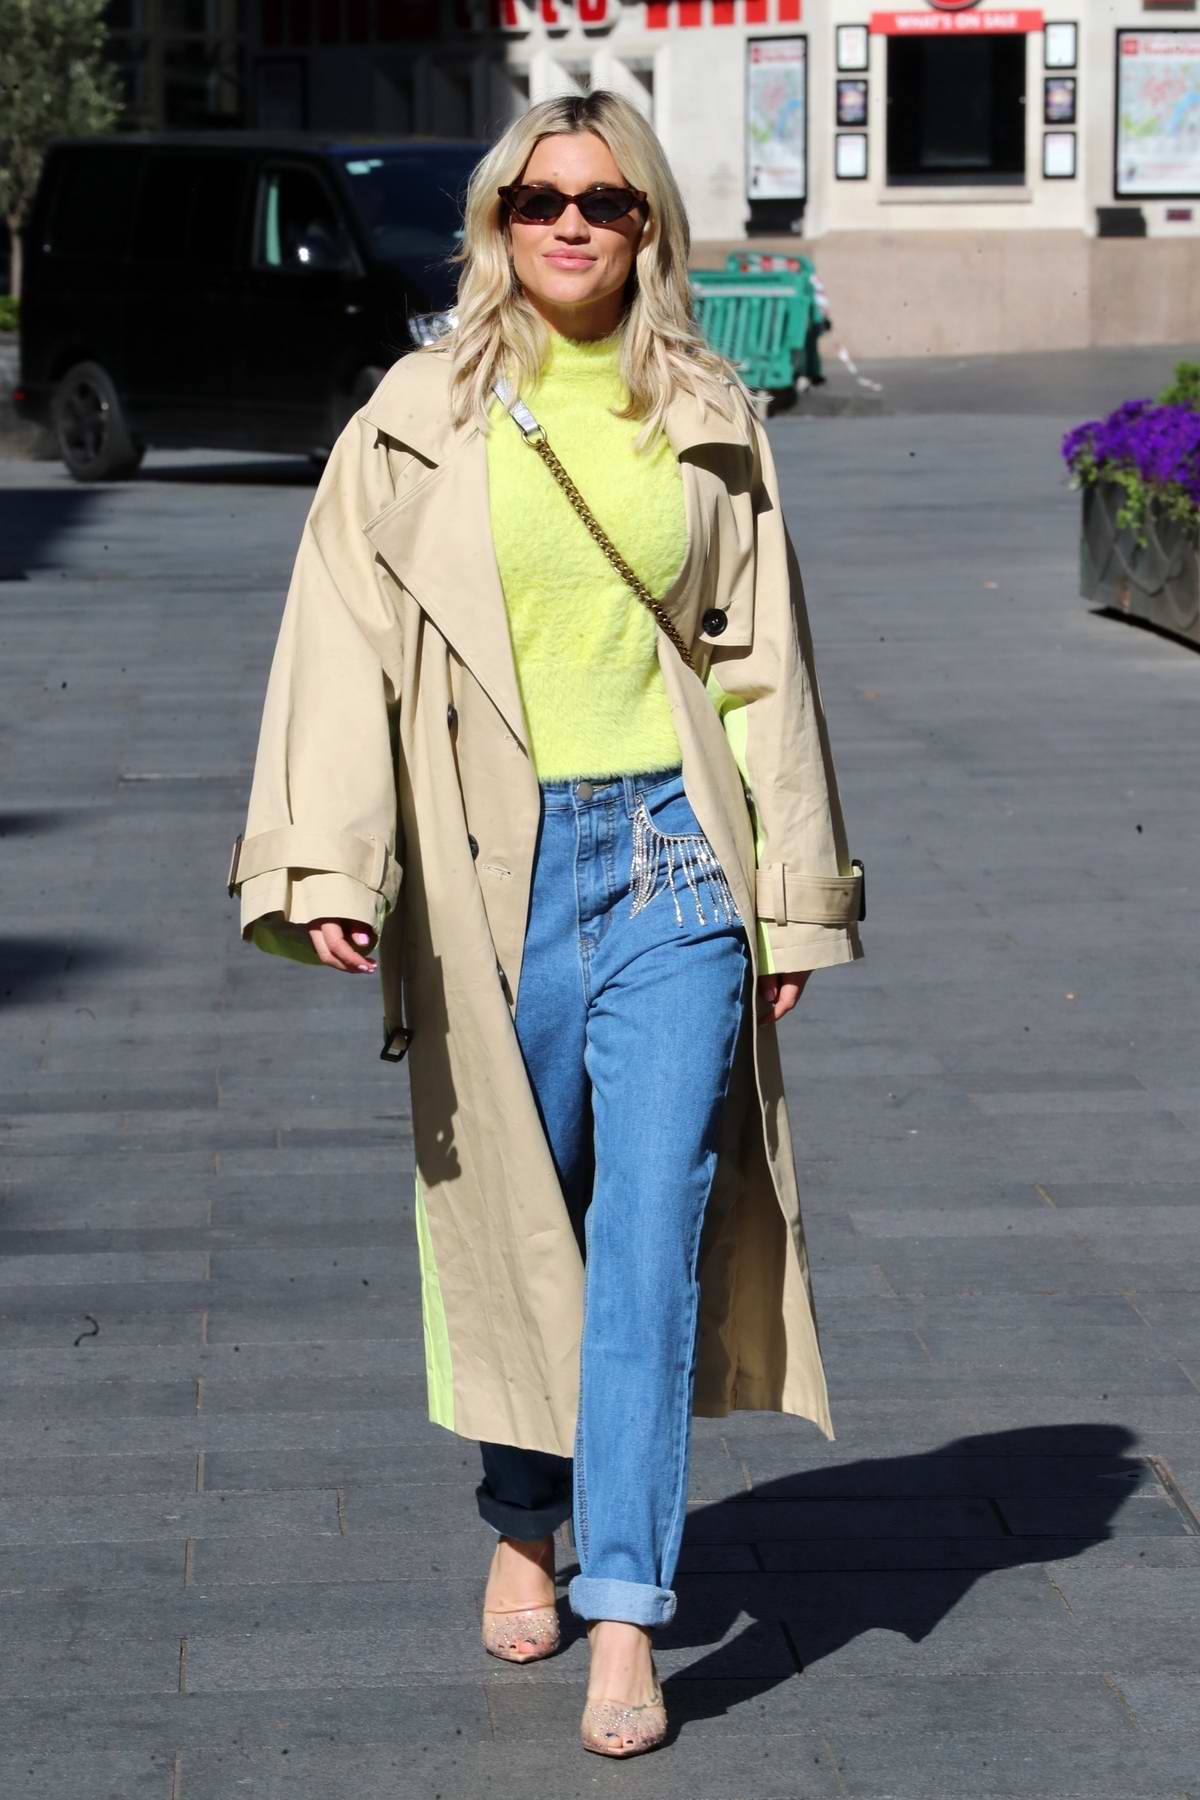 Ashley Roberts seen leaving the Heart Radio Studios in denim trousers and fluffy top in London, UK